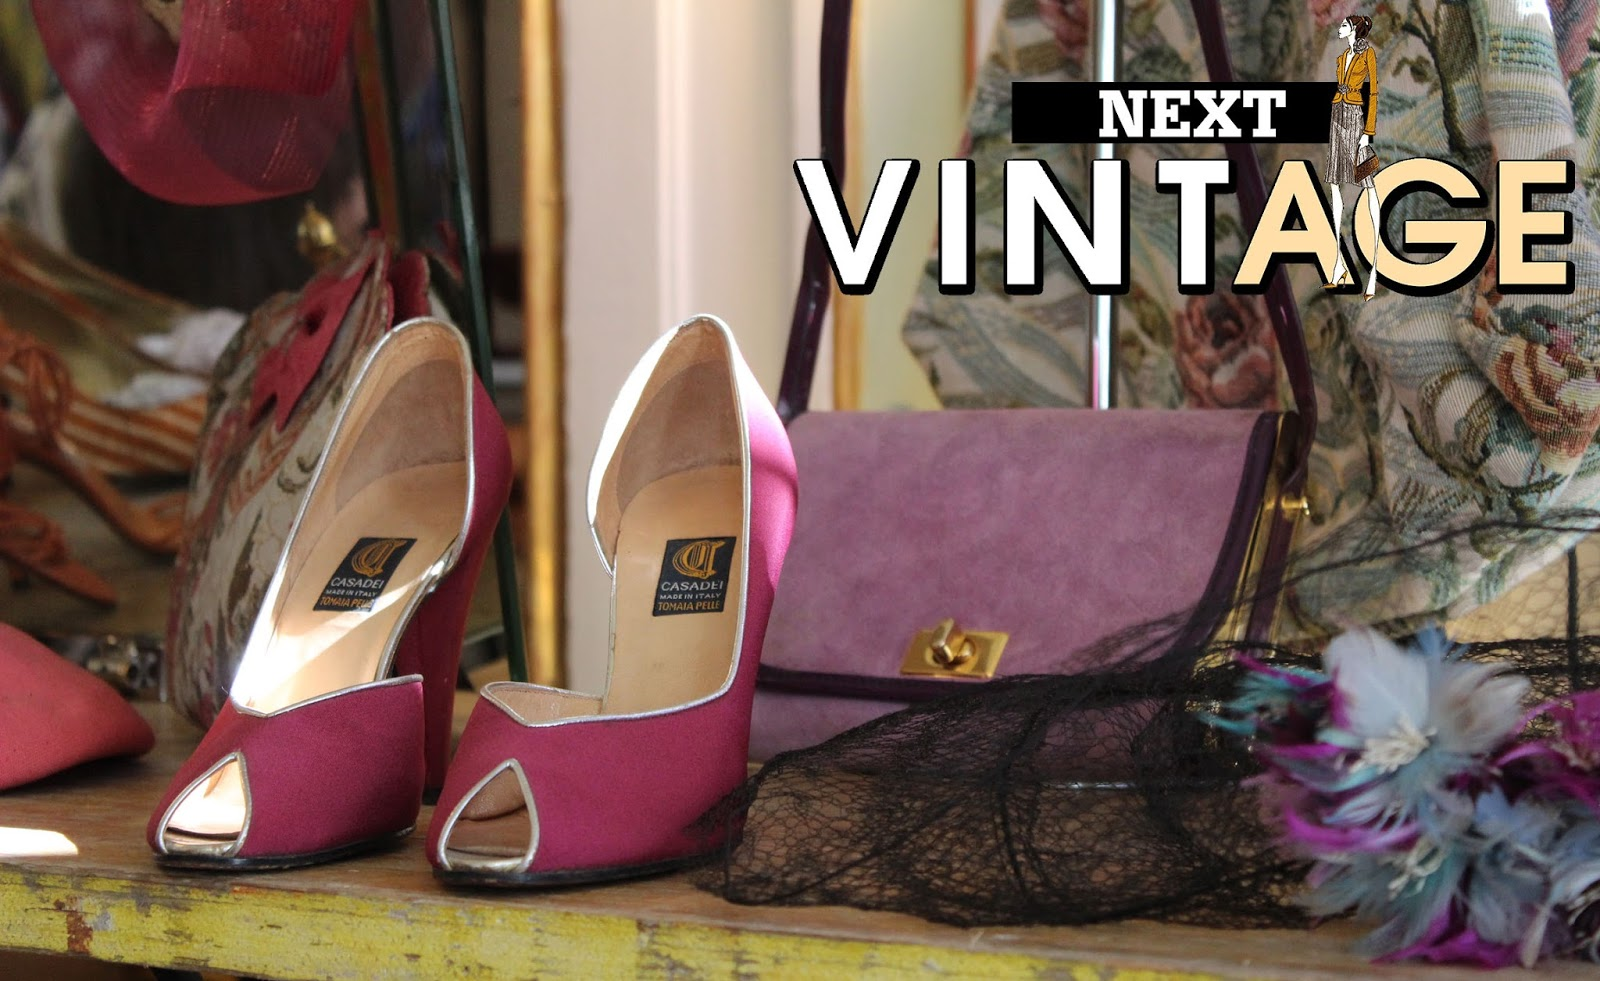 Eniwhere Fashion - Next Vintage - Belgioioso